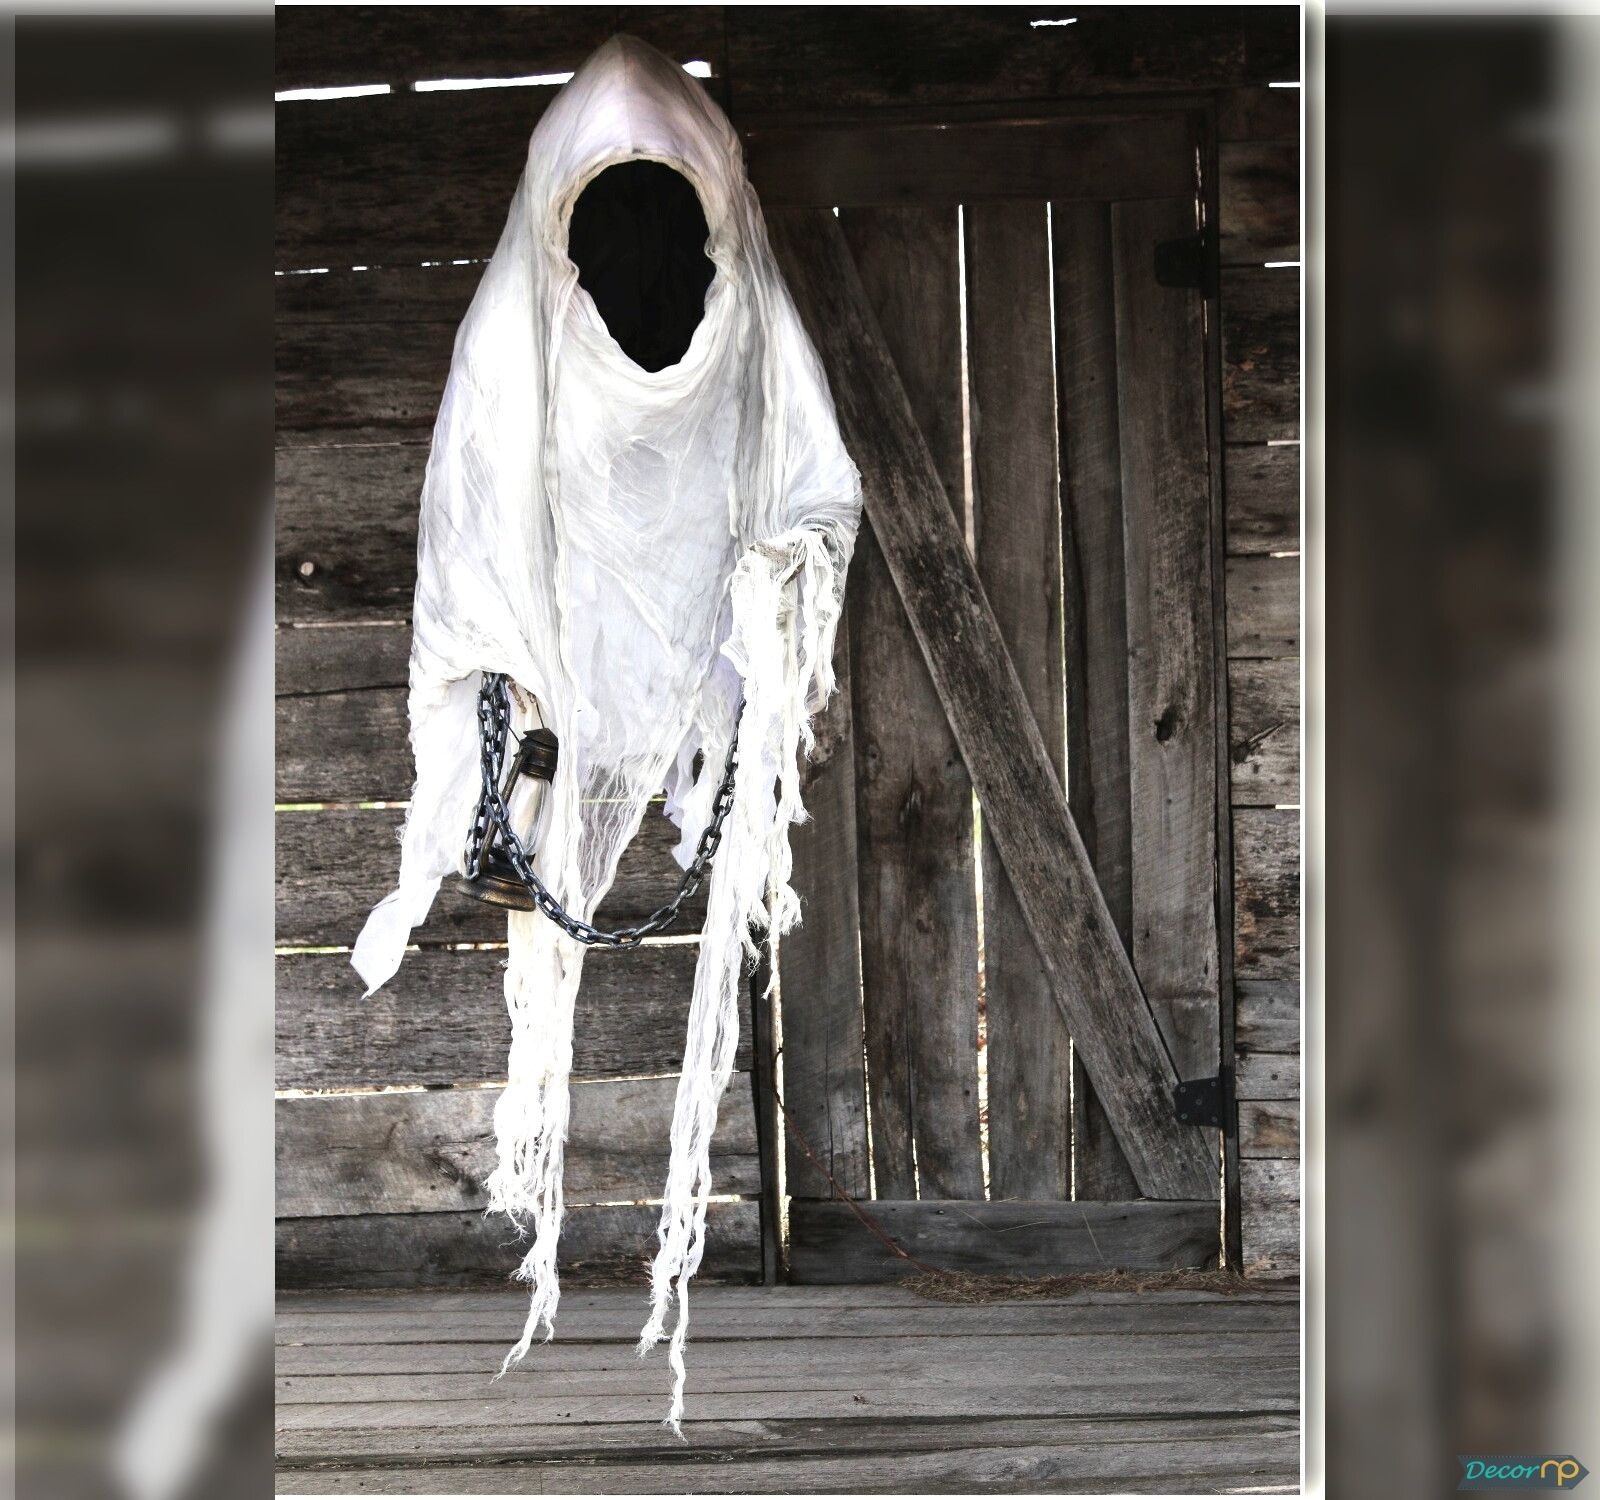 Scary Halloween Decoration at Spooky Hollywood Celebrity House - scary halloween decor